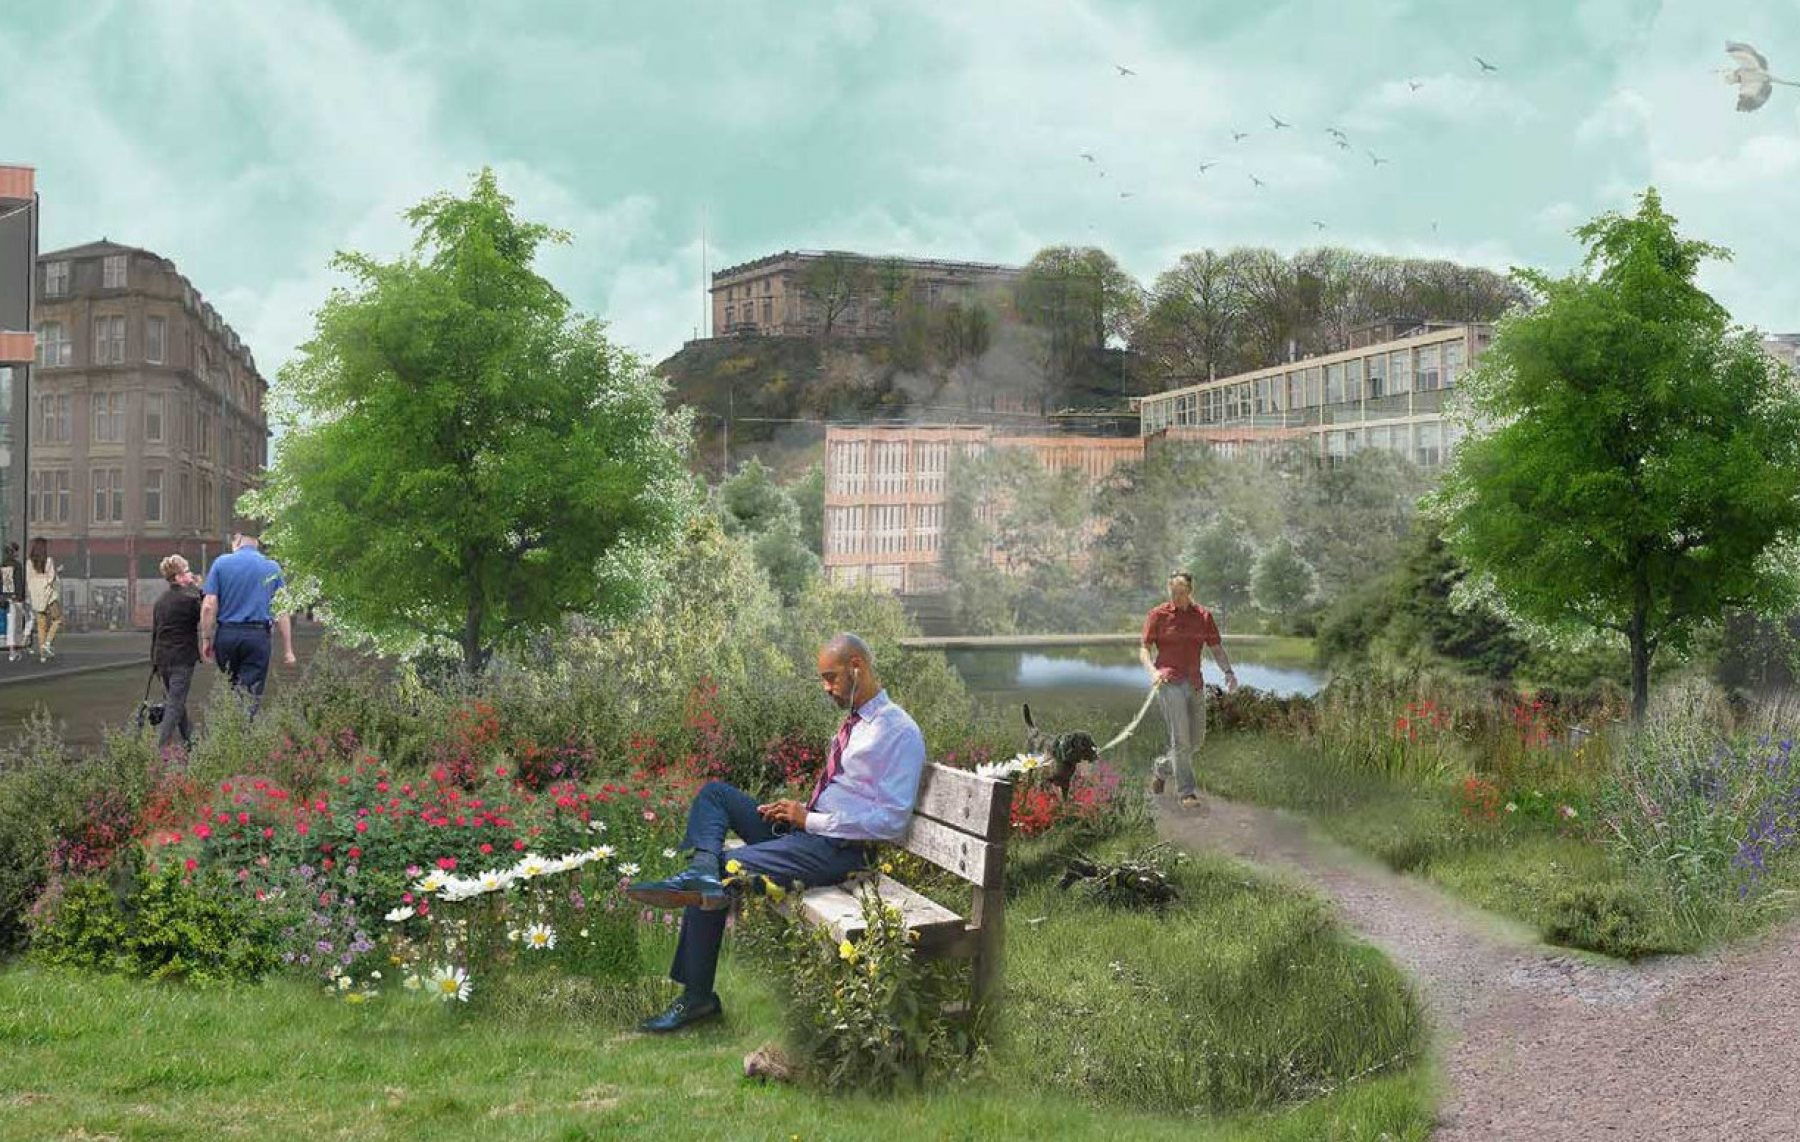 Image for What went right this week: the plan to rewild a city centre, plus more positive news